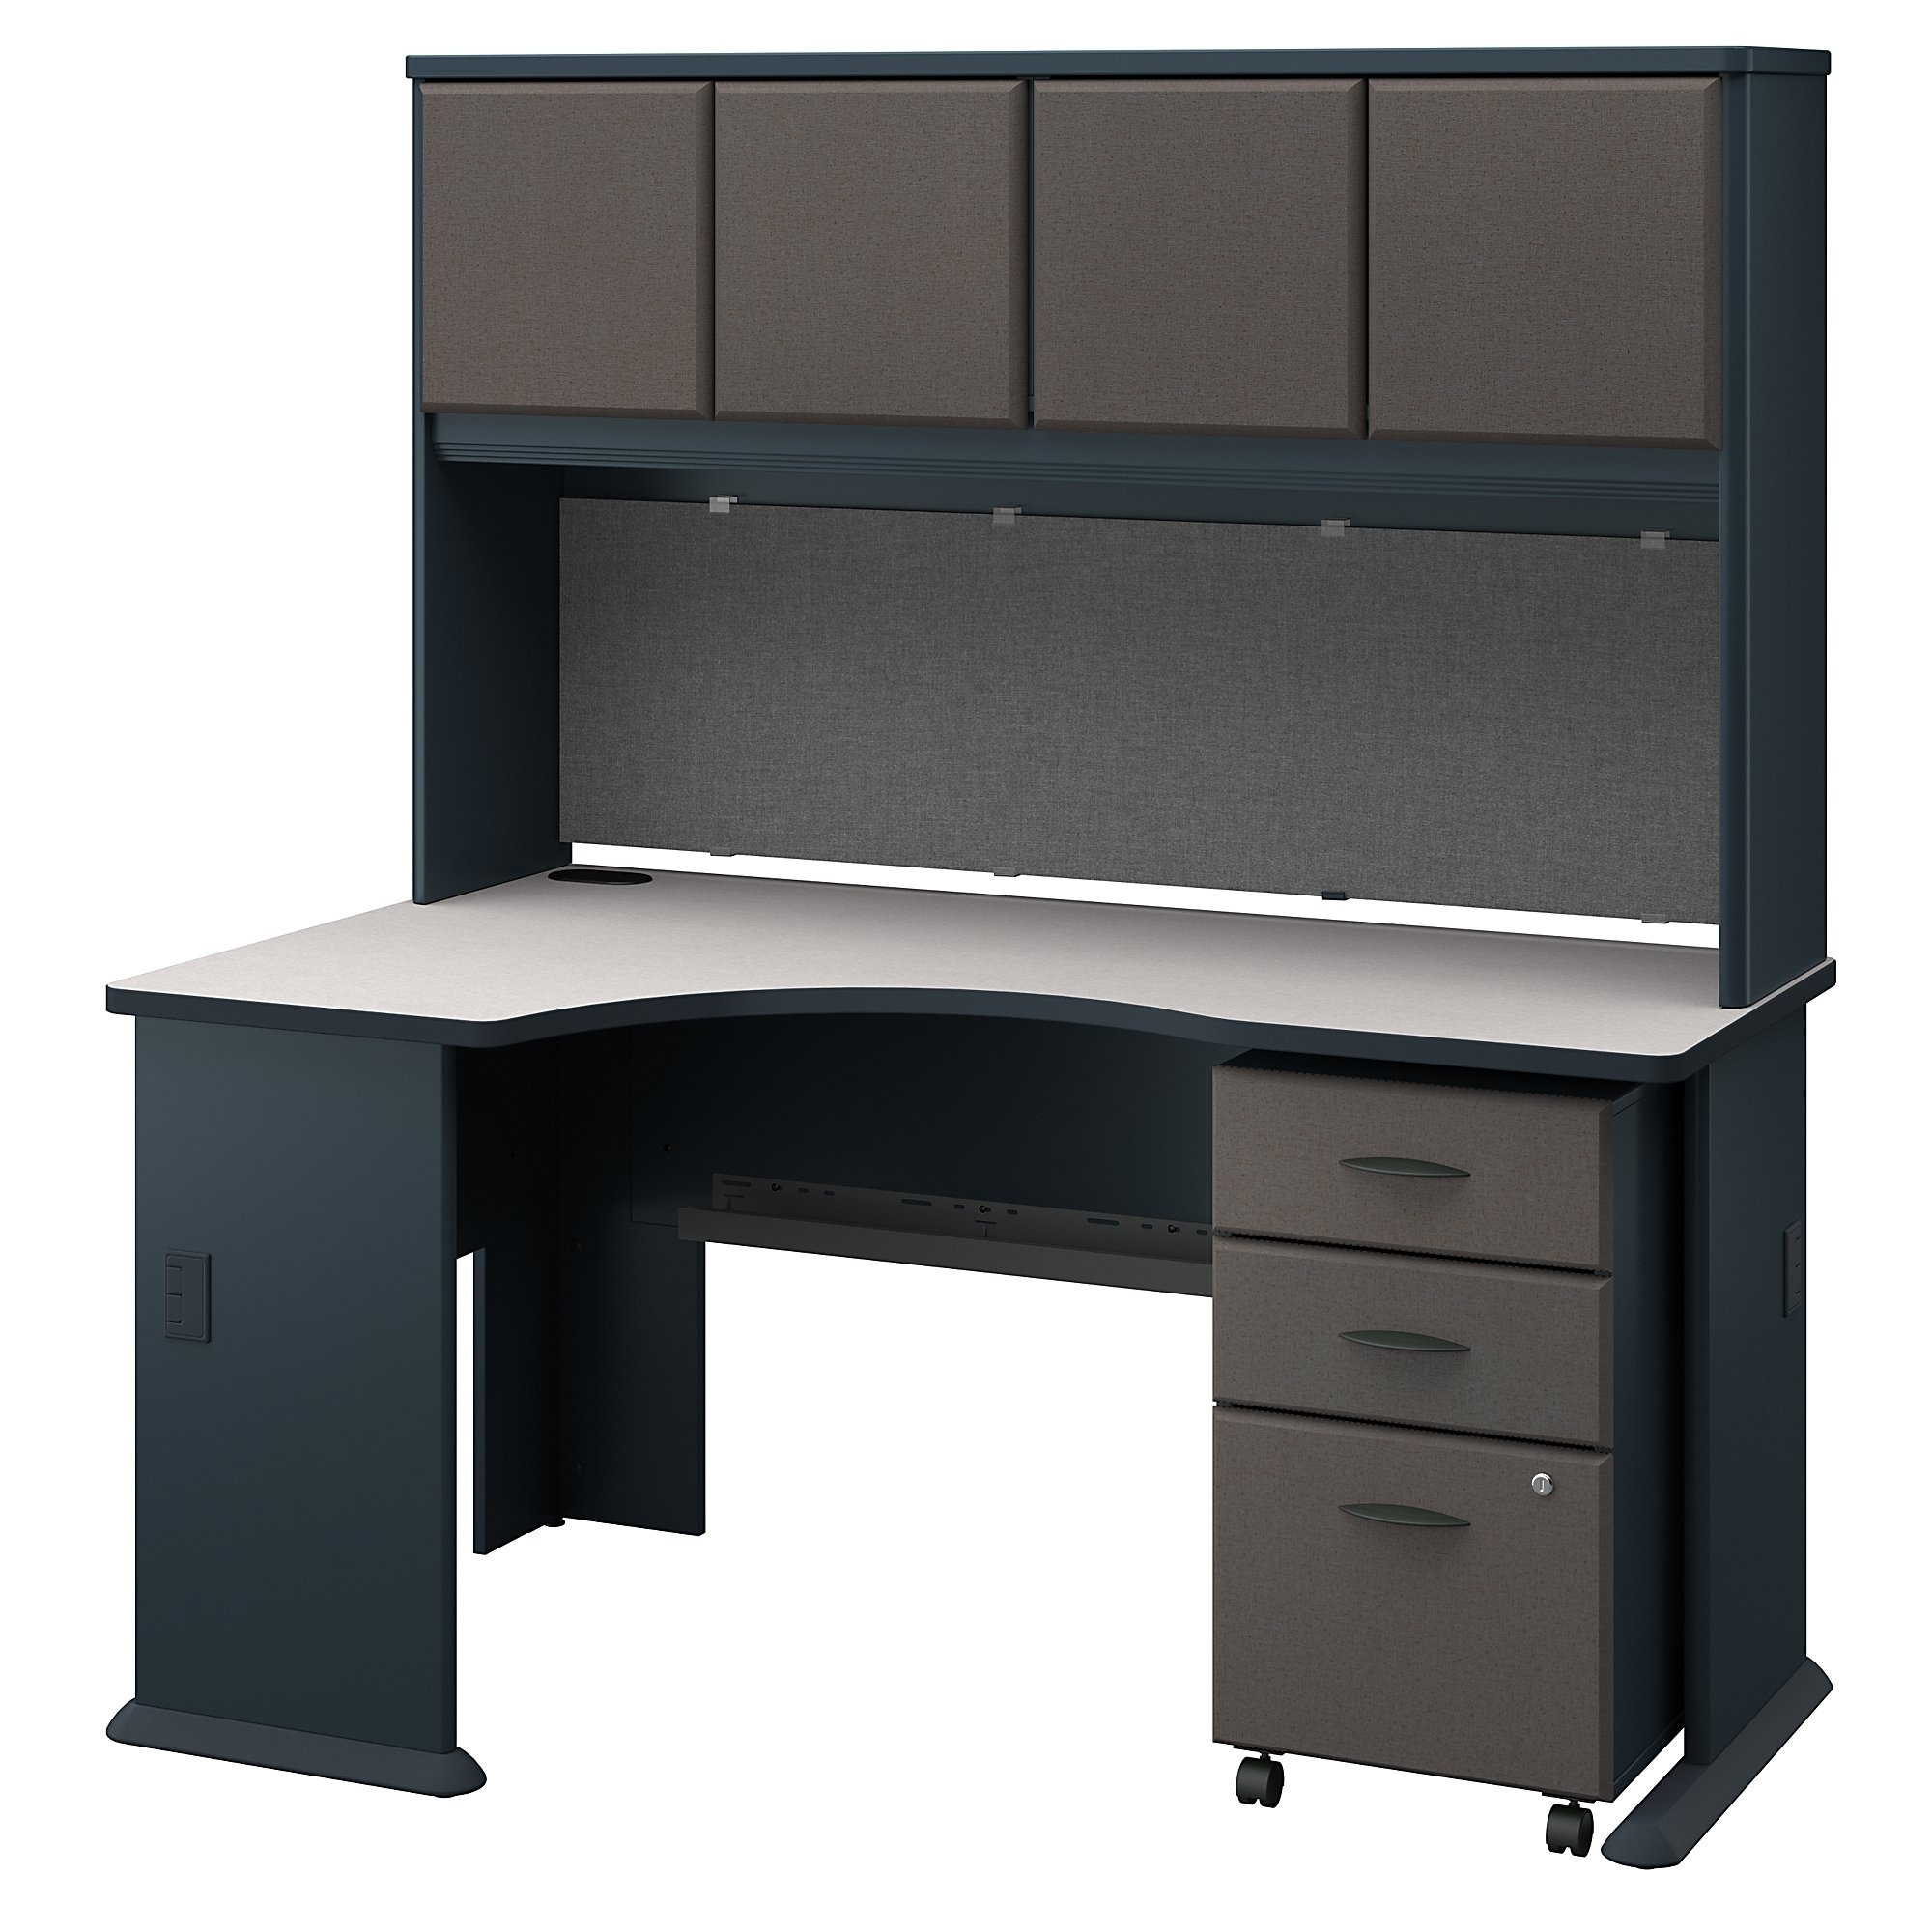 Charmant Shop Series A Left Corner Desk With Hutch And Mobile File Cabinet In Slate    Free Shipping Today   Overstock.com   20757166